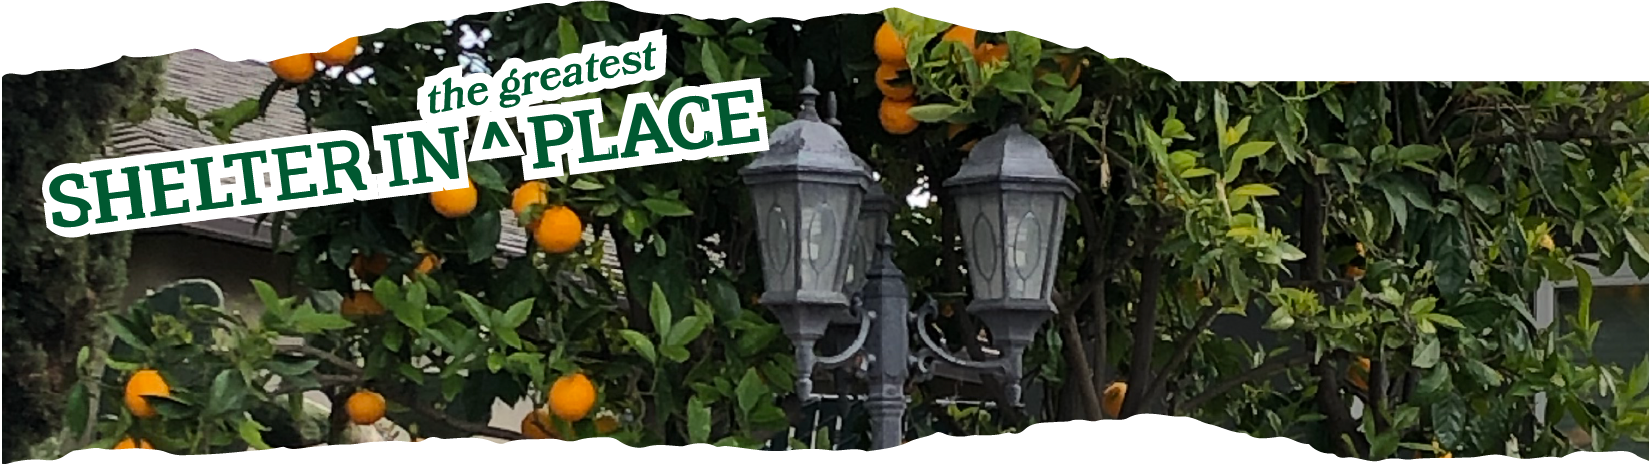 Title: Shelter in the Greatest Place laid over a photo of an old fashioned double sided lamp post being engulfed by an orange tree ladened with fruit.